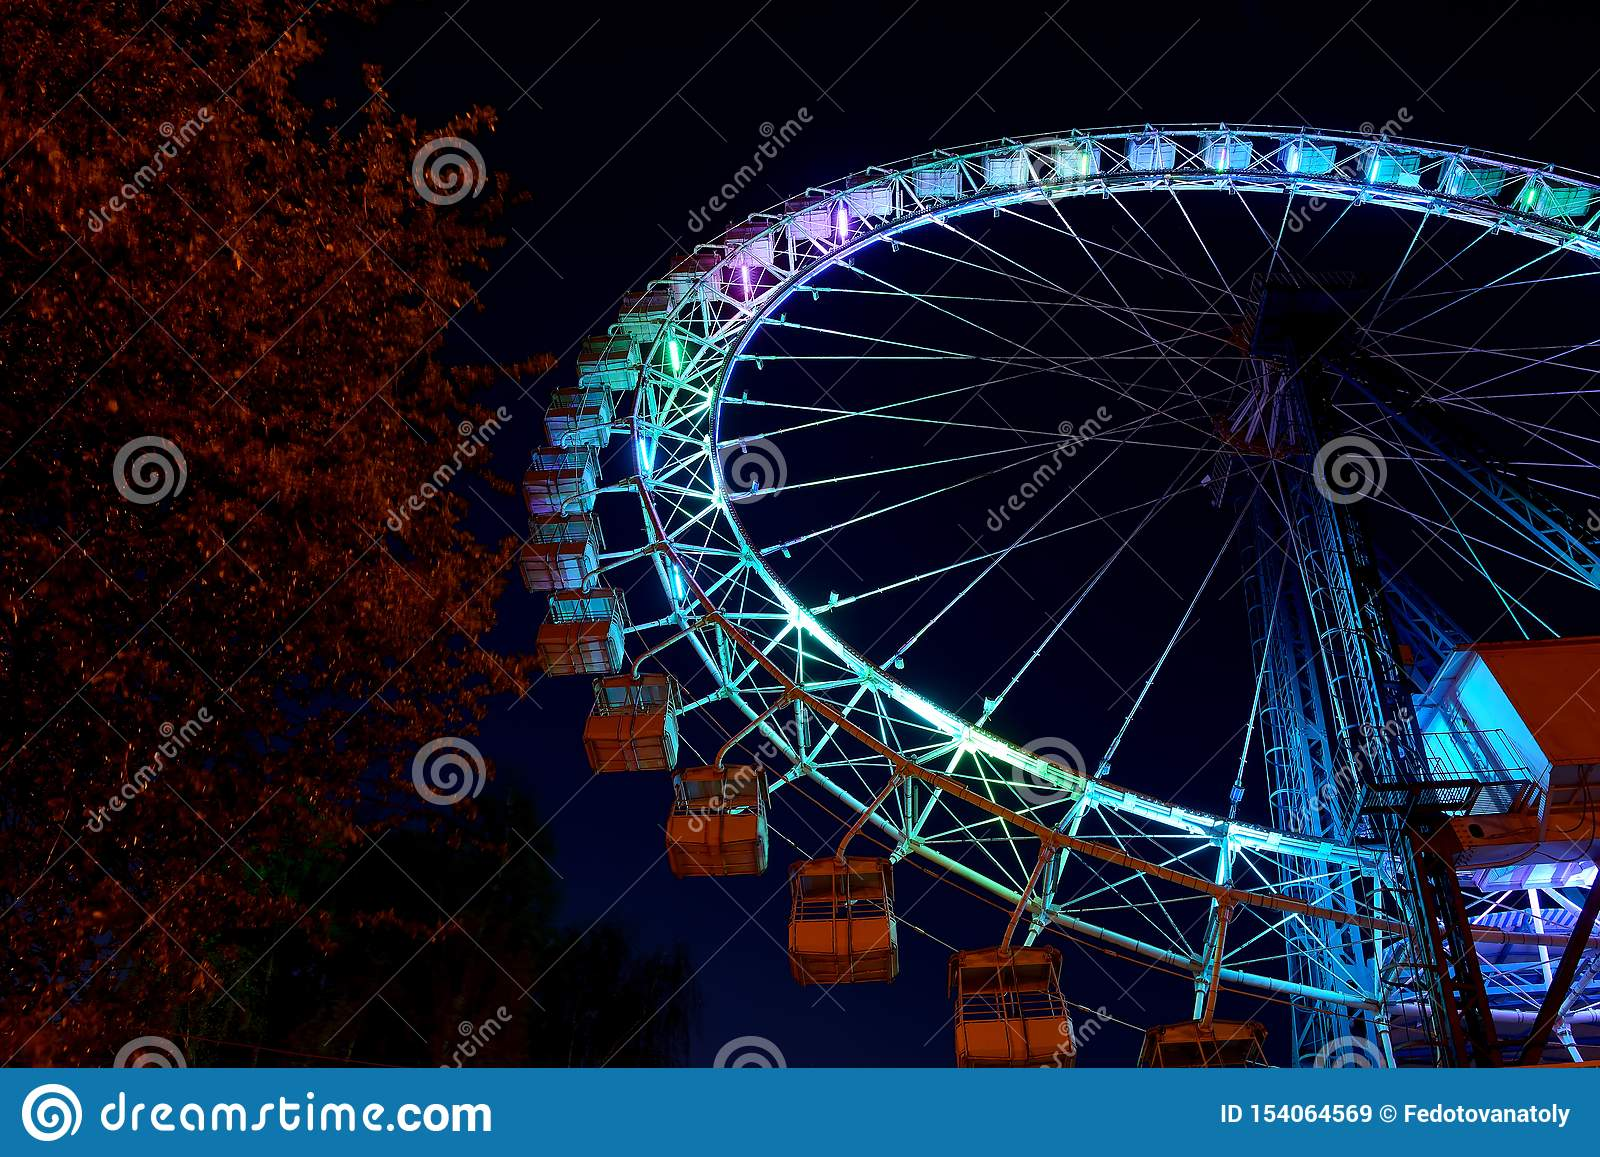 Ferris wheel with blue lighting and trees at night